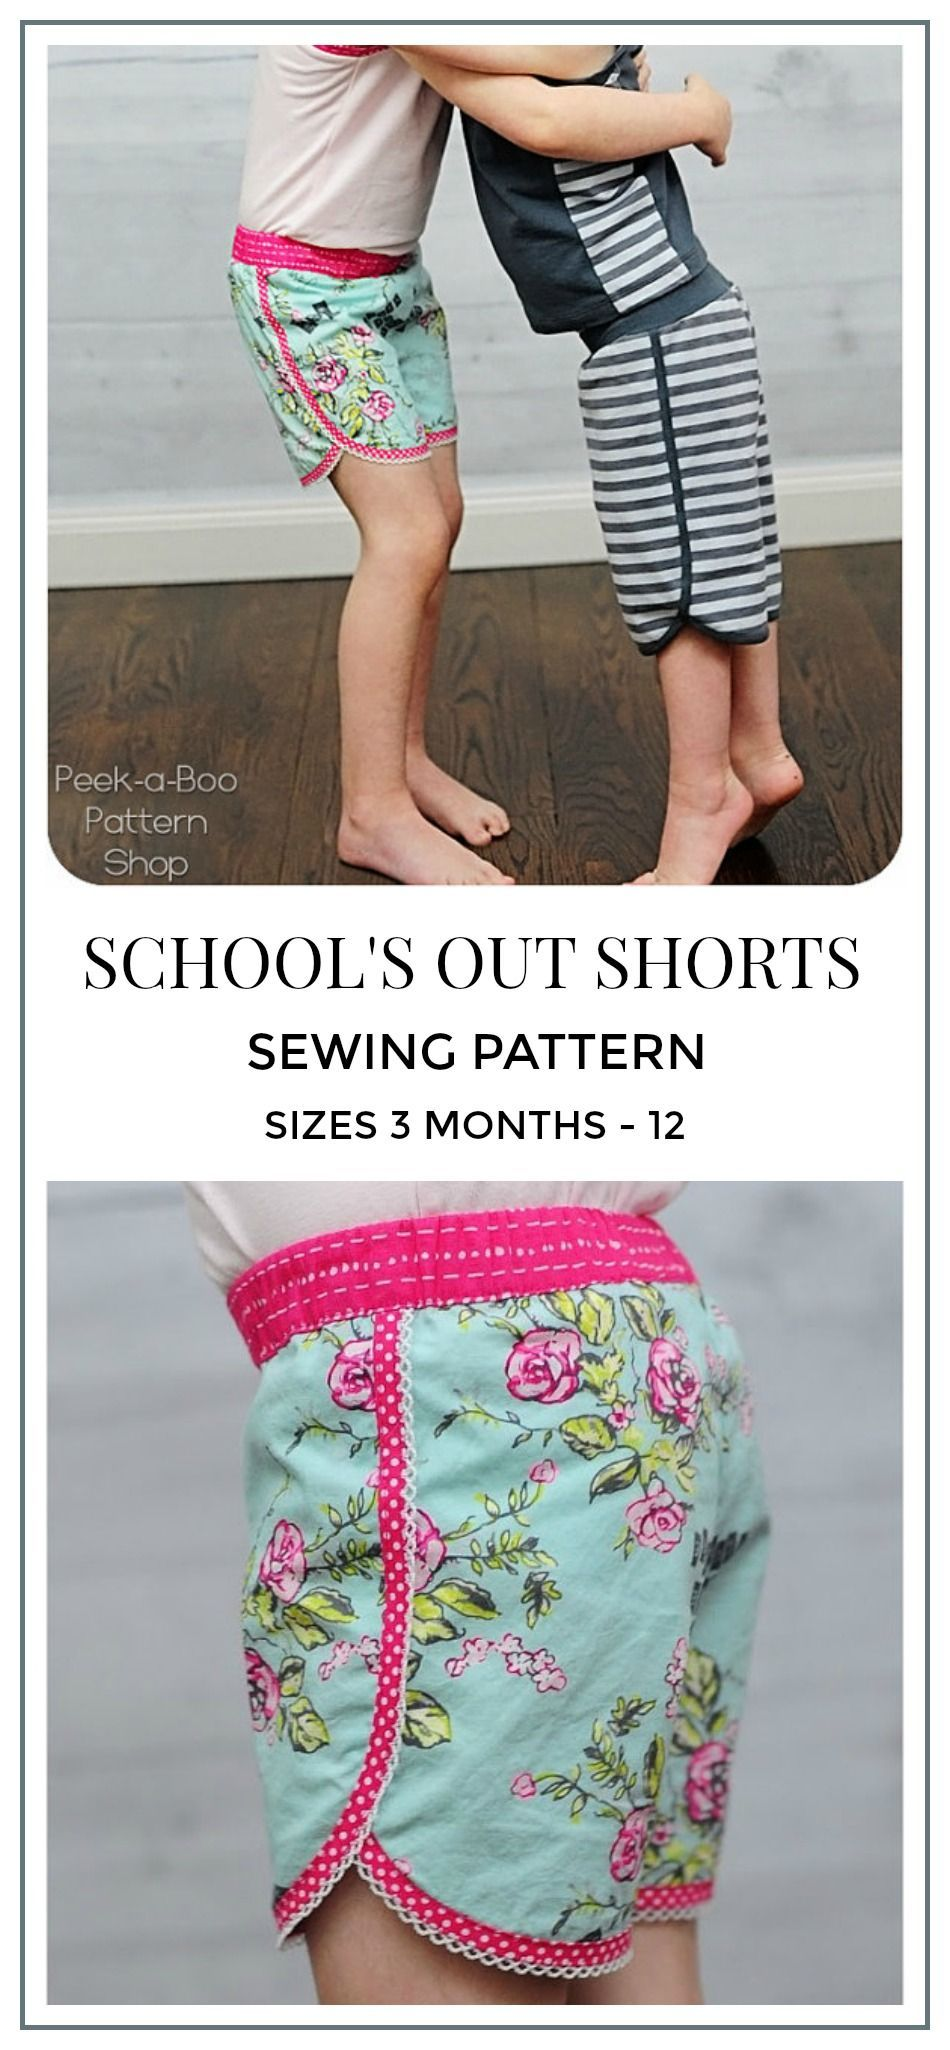 a2ae0069de School's Out Shorts Sewing Pattern: Running Shorts Pattern, Swim Shorts  Pattern, Girls Sewing Pattern, Boys Sewing Pattern #sewing #sewingpattern  ...